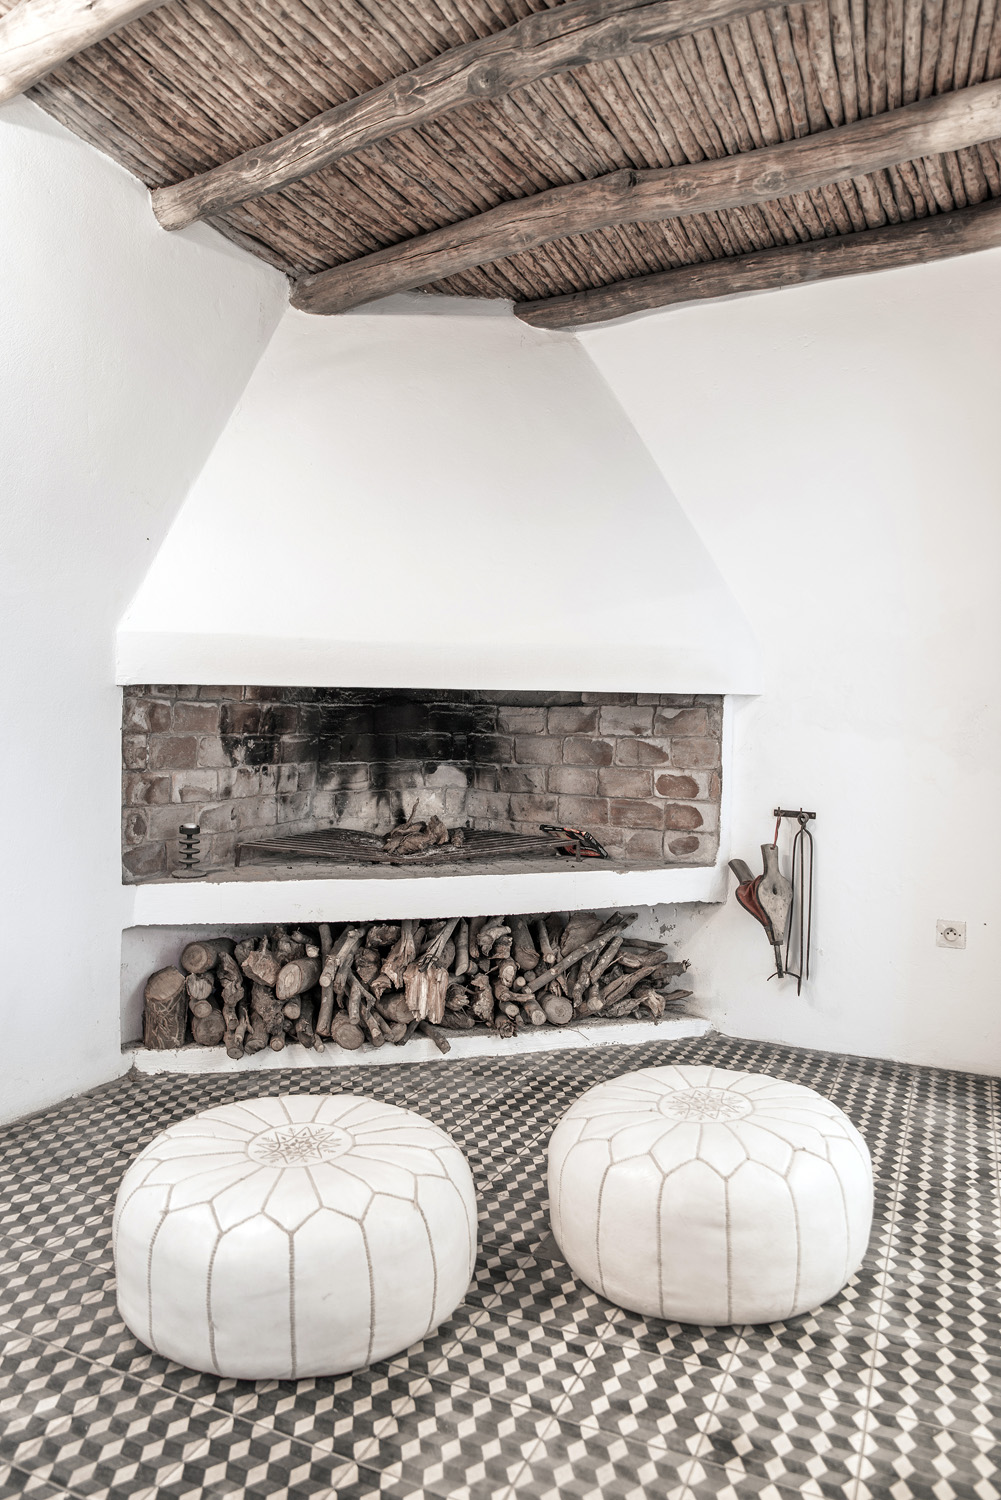 Fire place with moroccan poufs